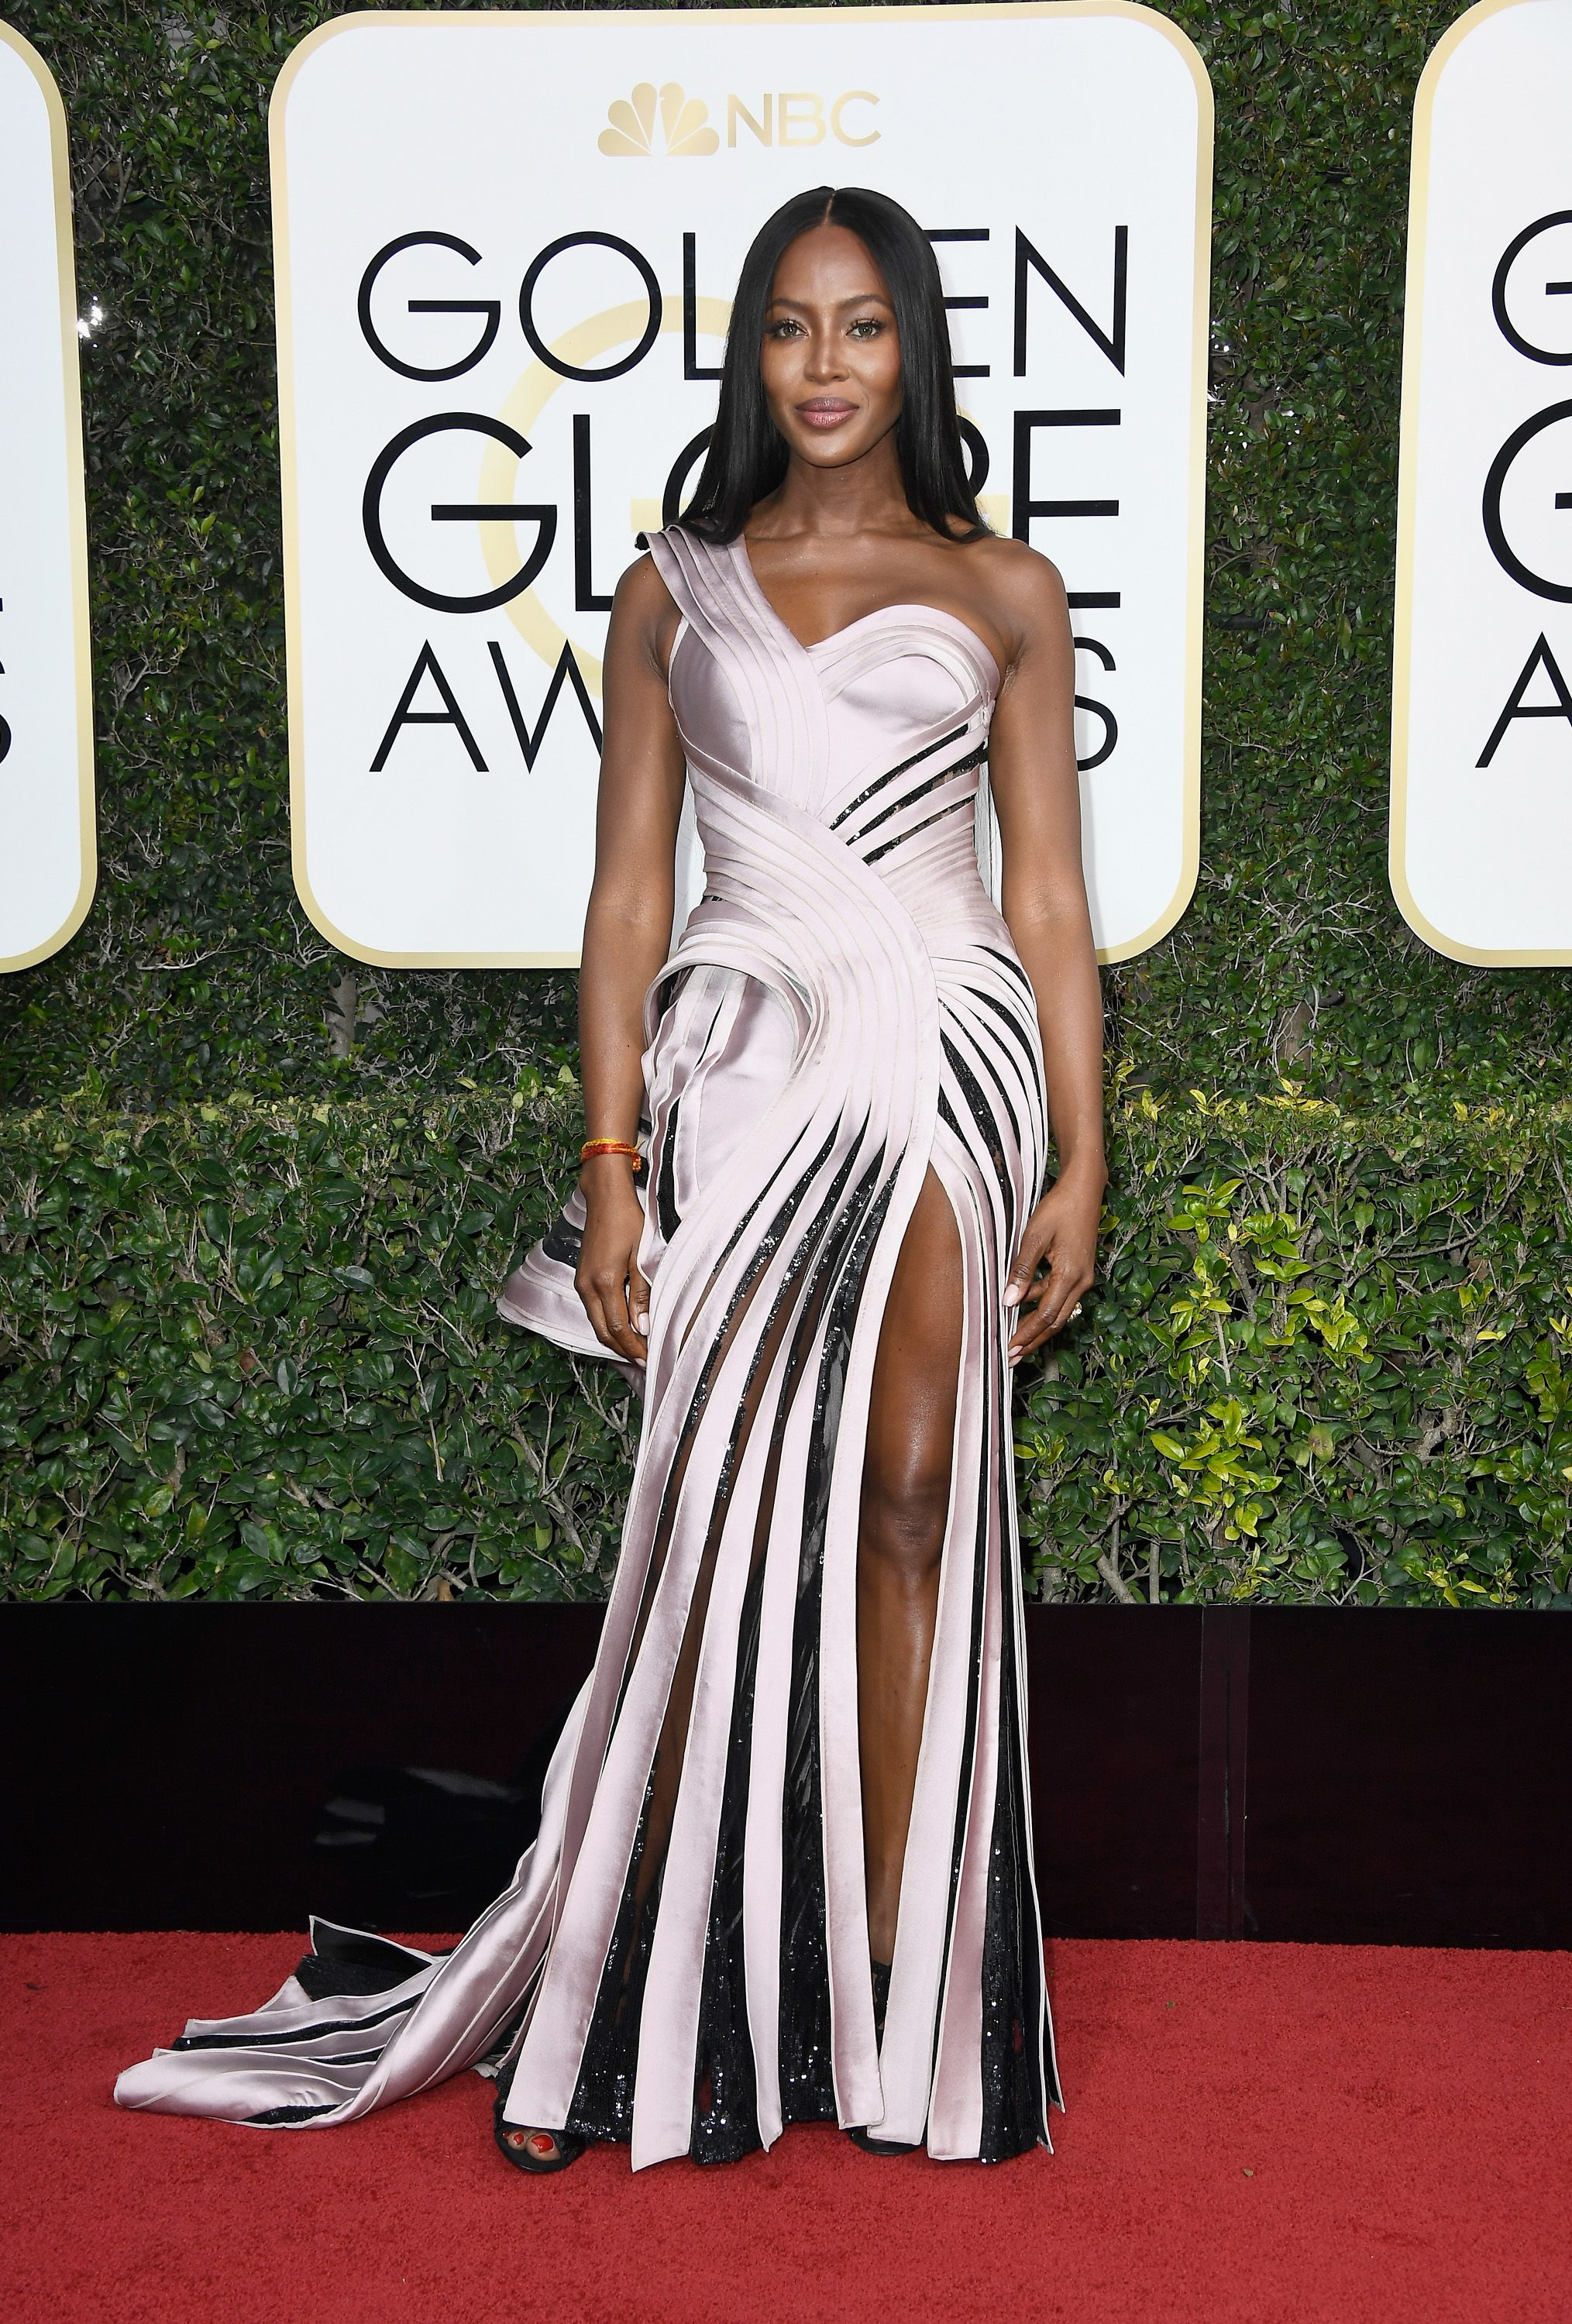 a438b4f1242 Best Red Carpet Dresses at the Golden Globes 2017 - All of the Golden  Globes Dresses